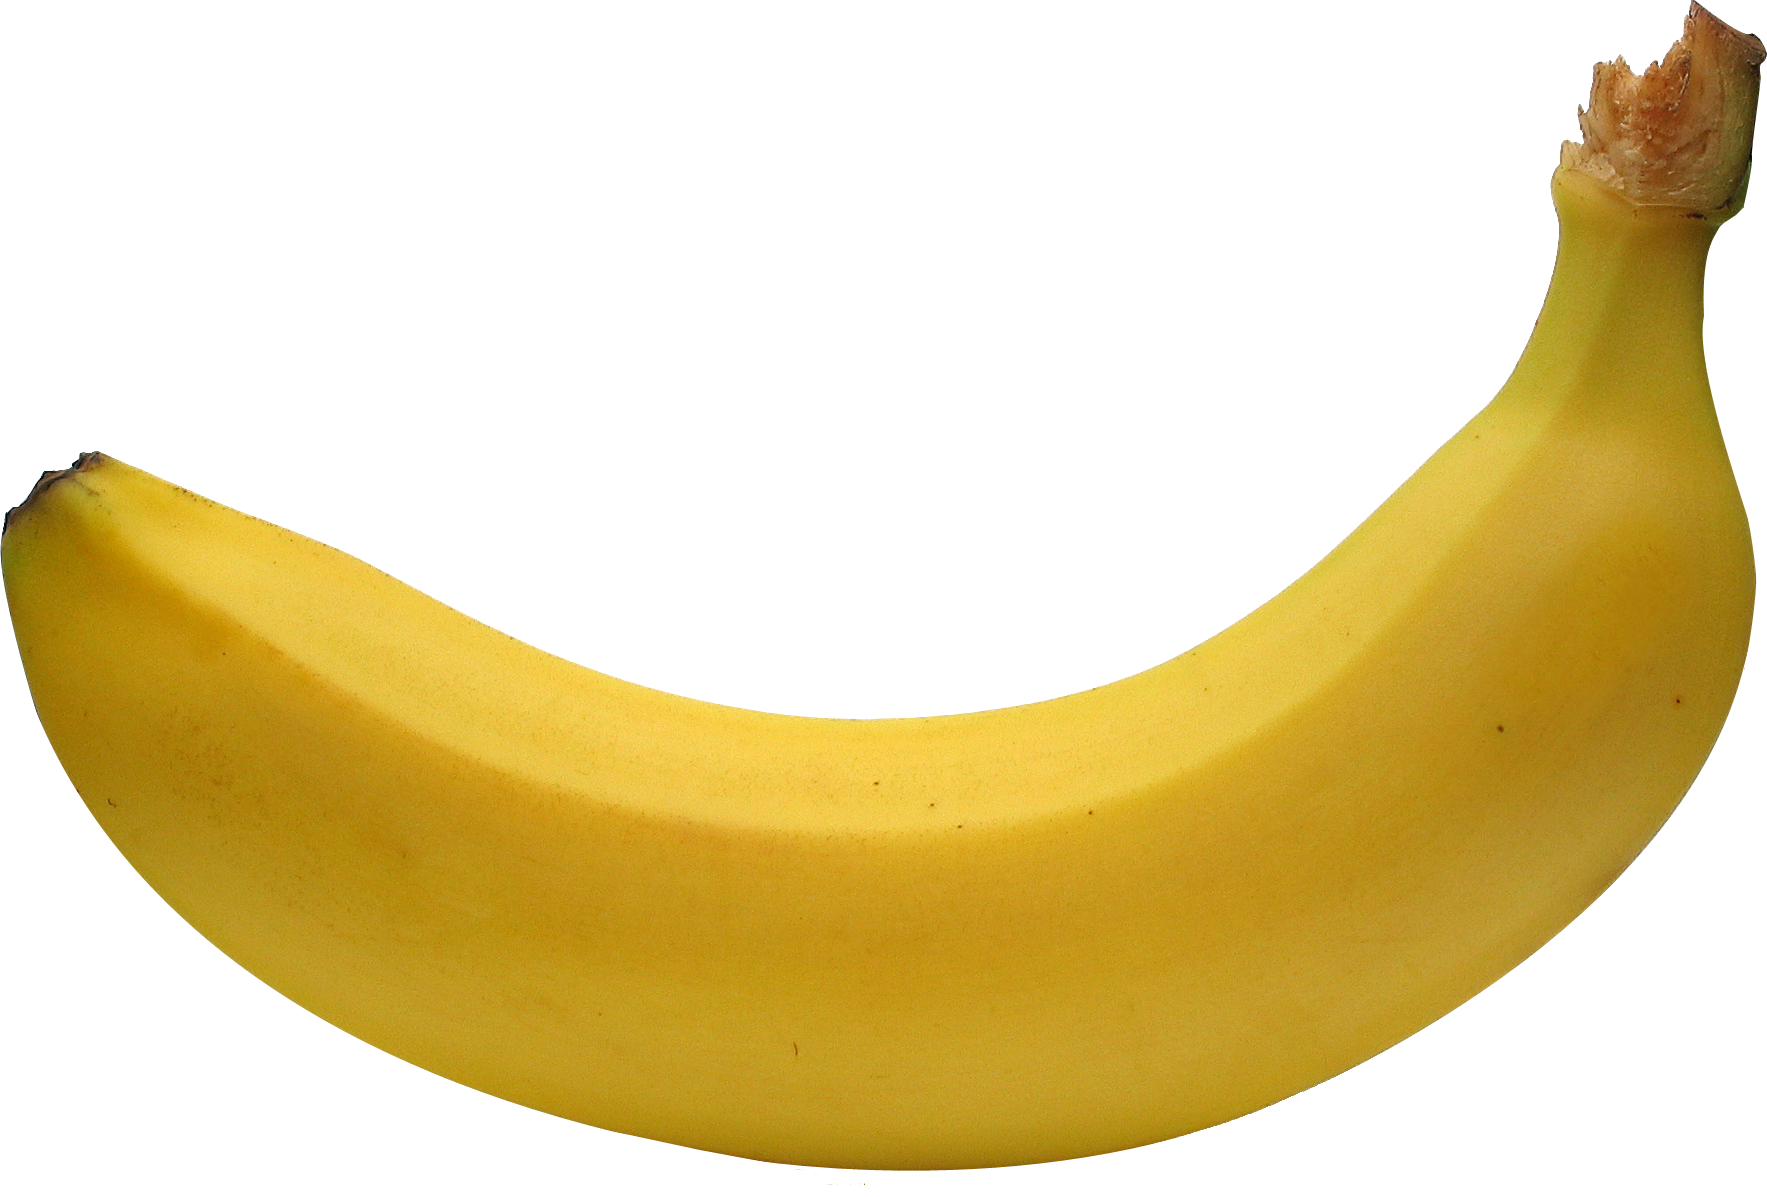 Banana and apple together clipart image freeuse Banana Two | Isolated Stock Photo by noBACKS.com image freeuse